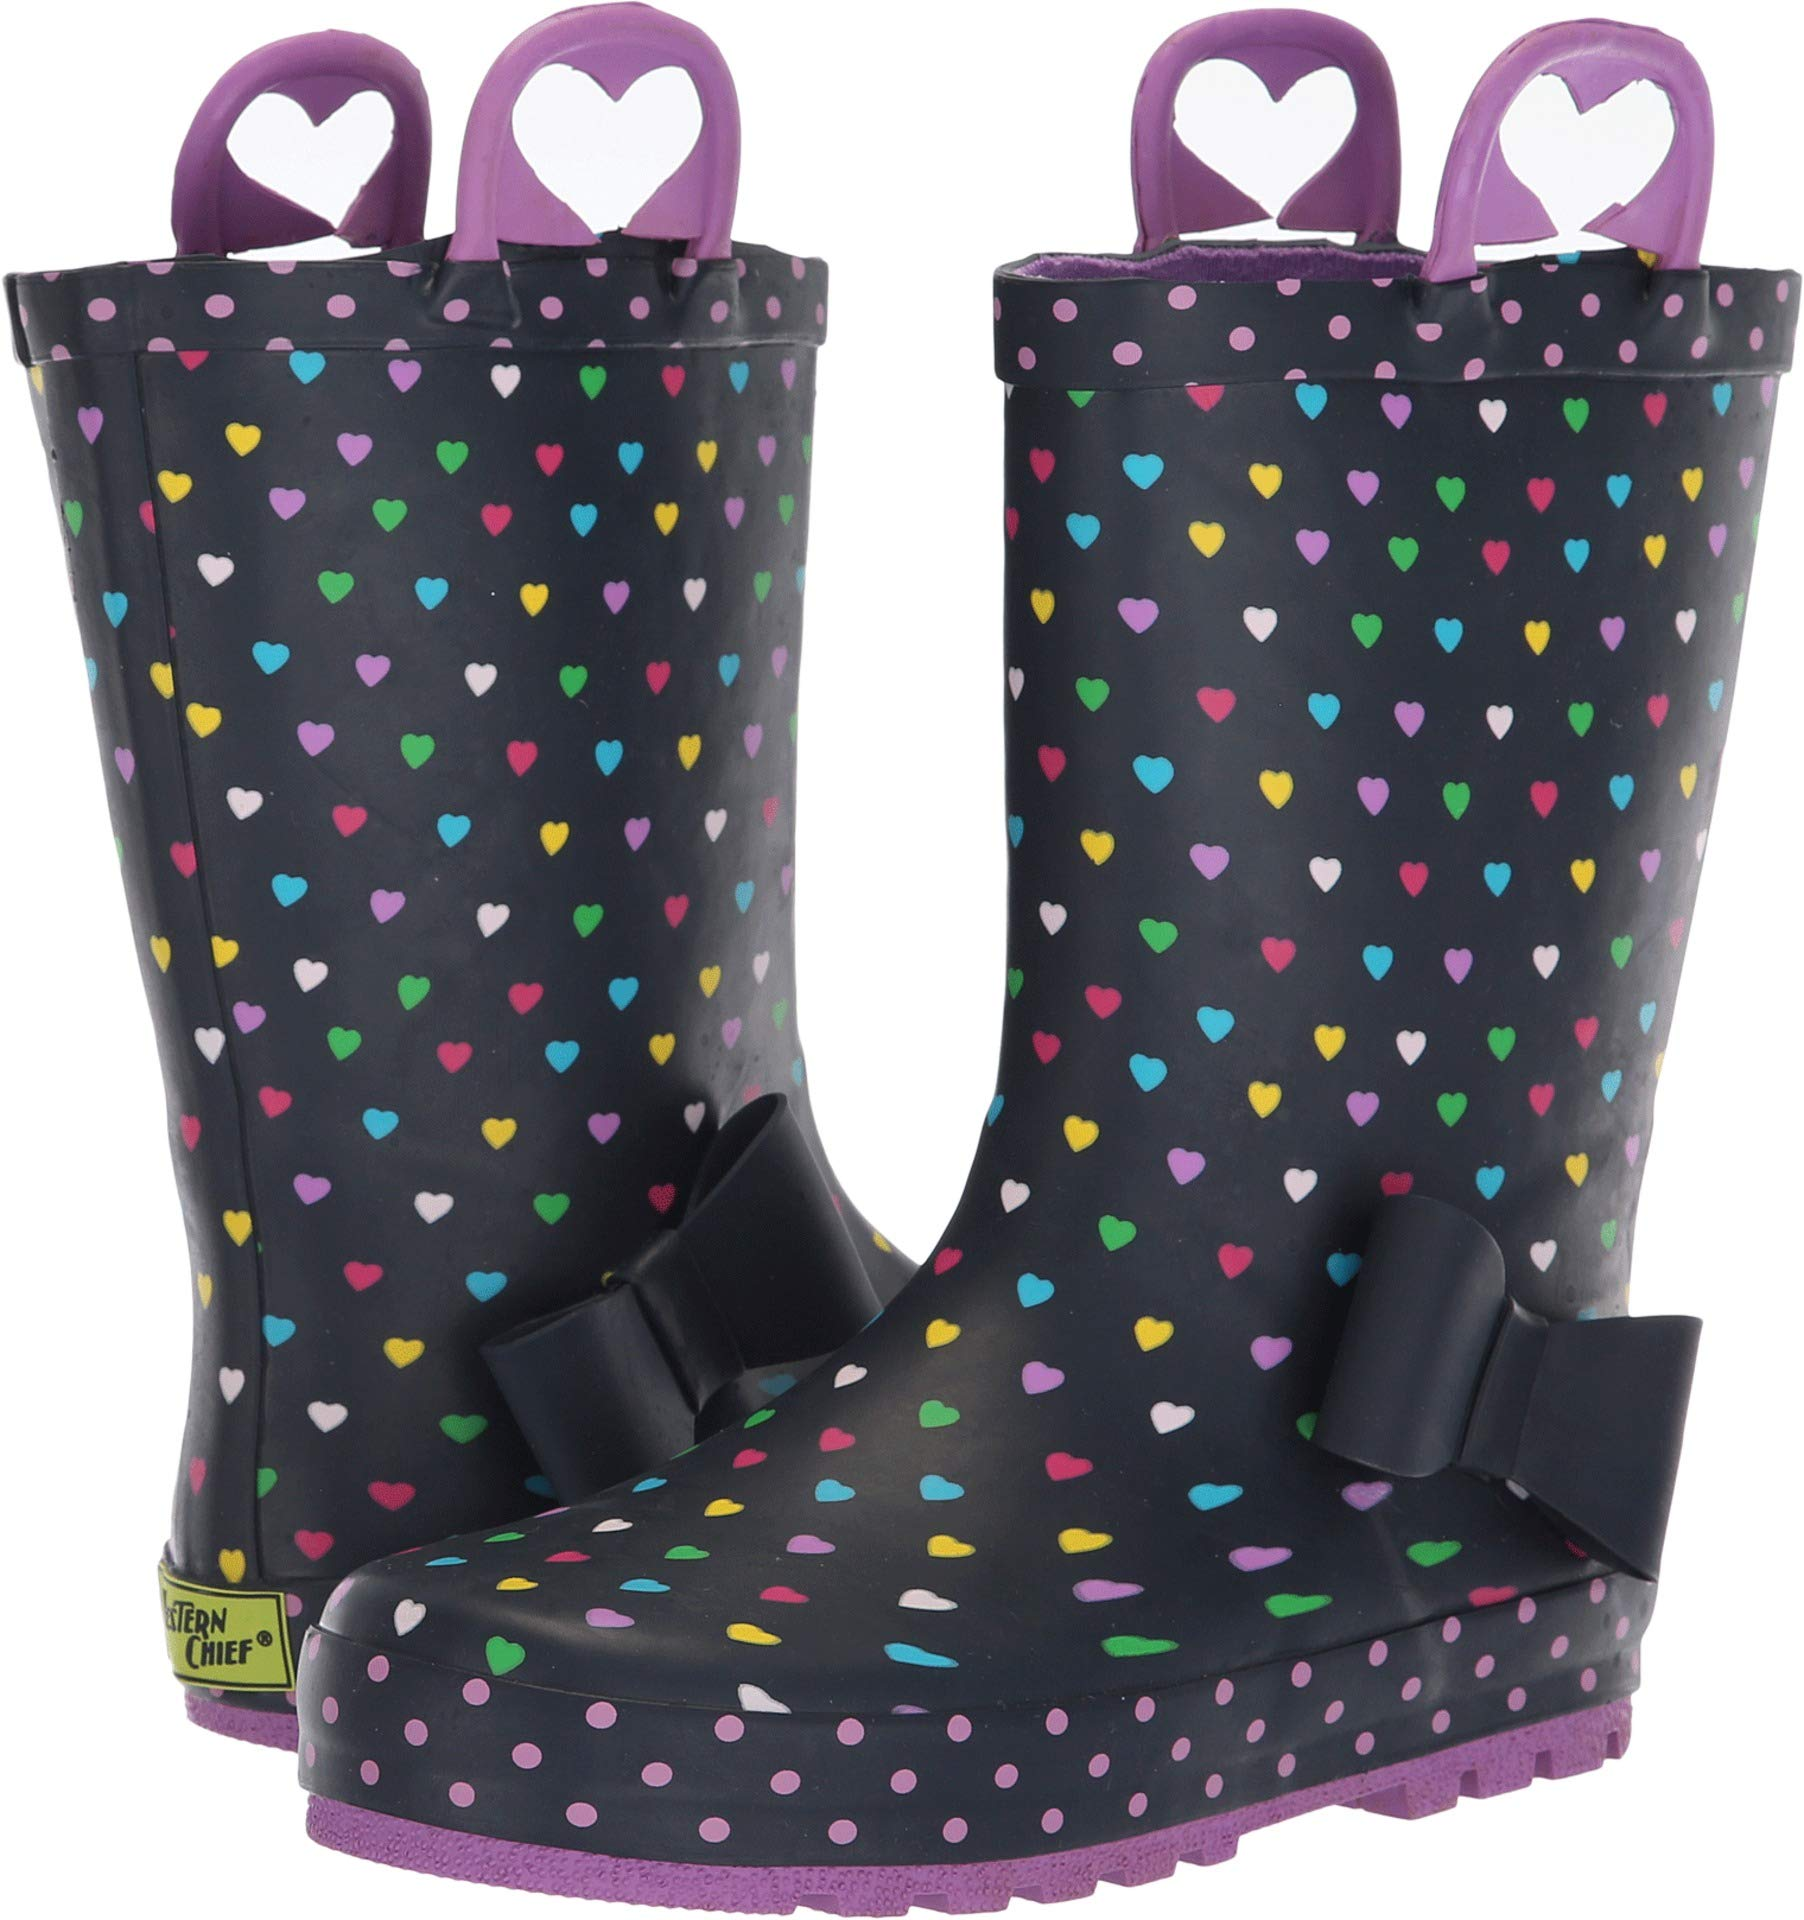 Western Chief Girls' WCK Heart Parade RAIN Boot, Navy, 12 M US Little Kid